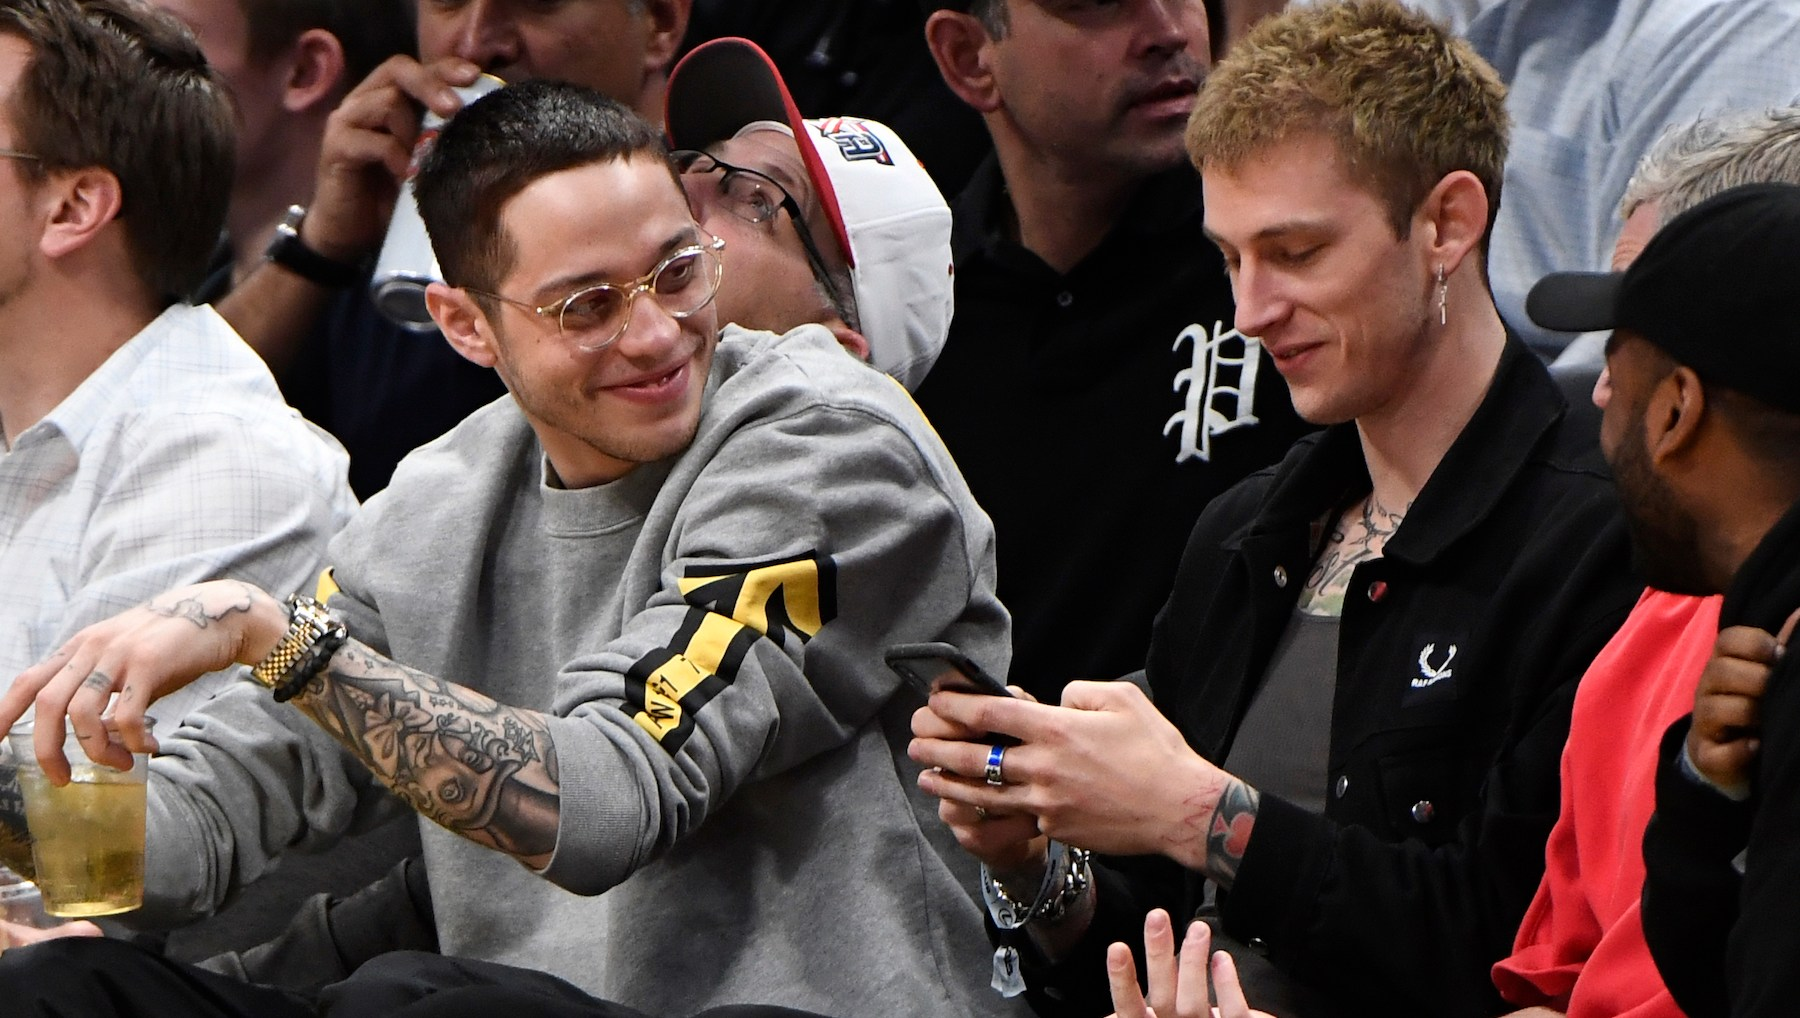 Pete Davidson, machine gun kelly